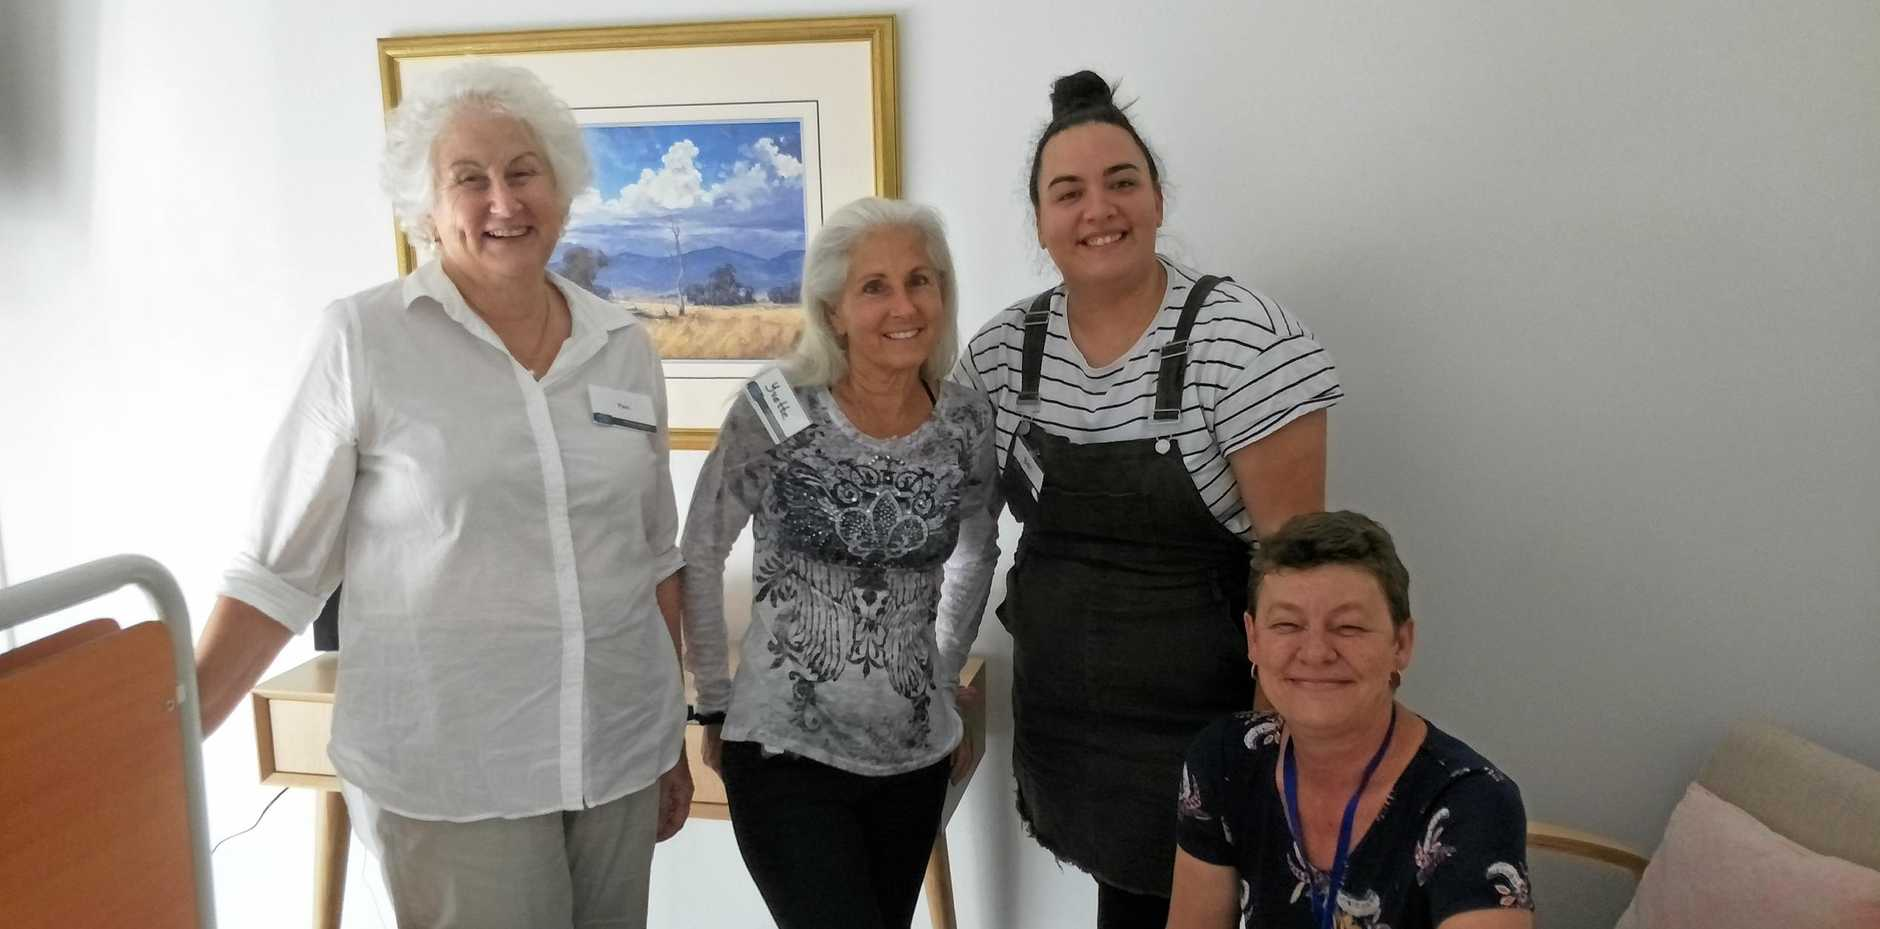 CARE AROUND THE CLOCK: In the Rose Room at Katie Rose Cottage Hospice are (from left) support volunteer Pam Moffatt, personal carer Yvette Lohnes, registered nurse Bec Smith and clinical nurse co-ordinator Claire Perry.